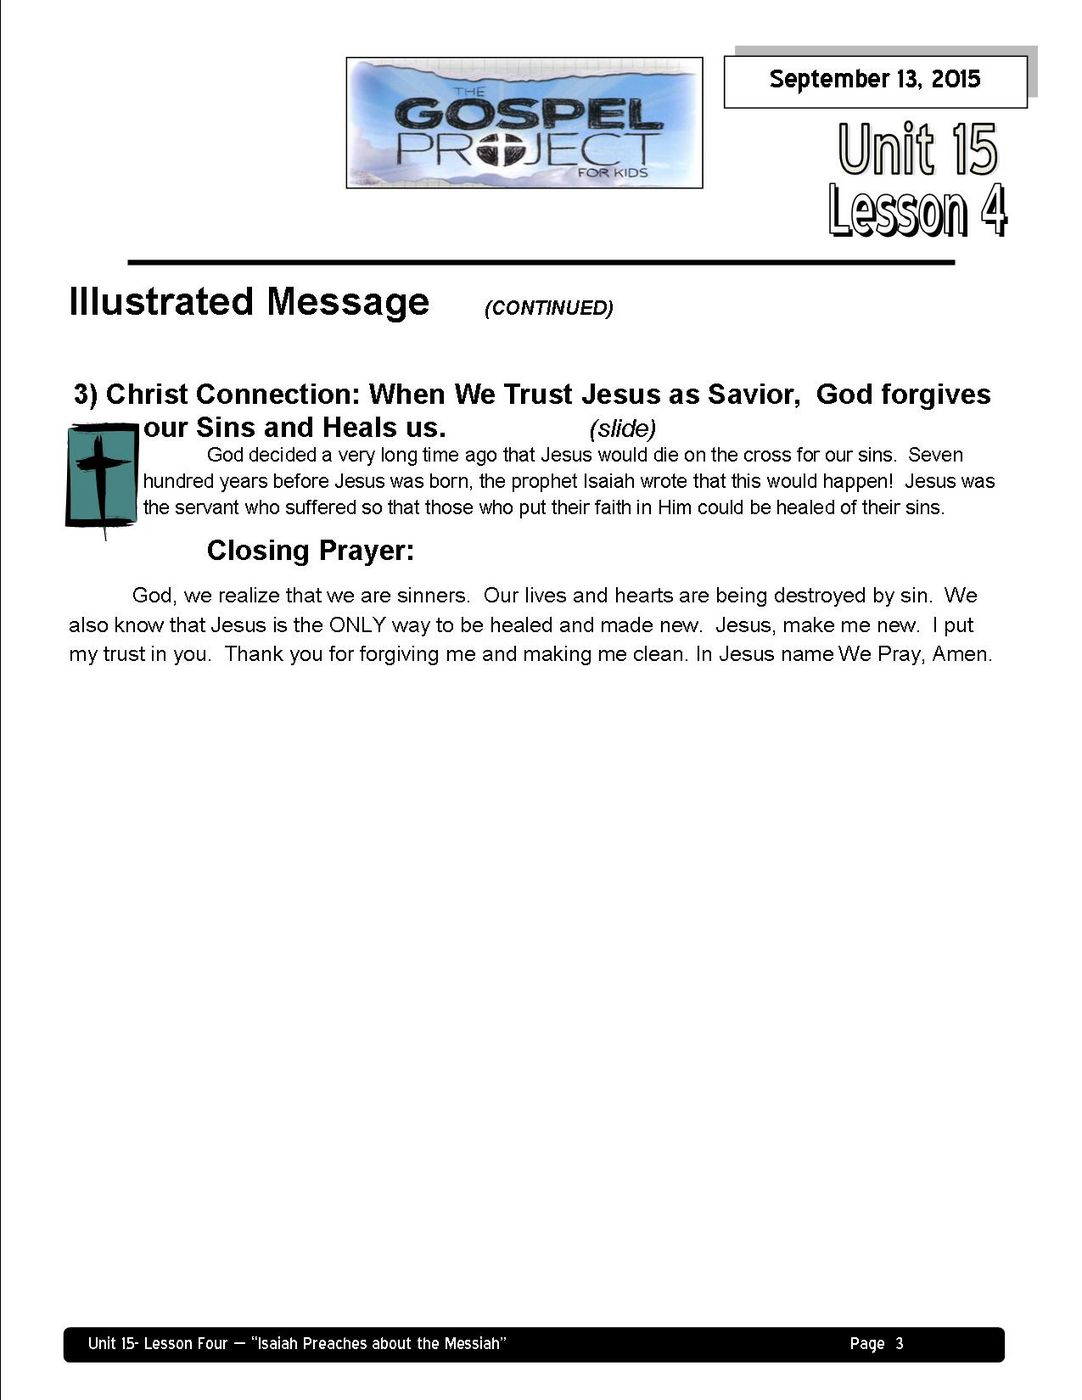 Lead U15- L4-page 3-Isaiah and the Messiah